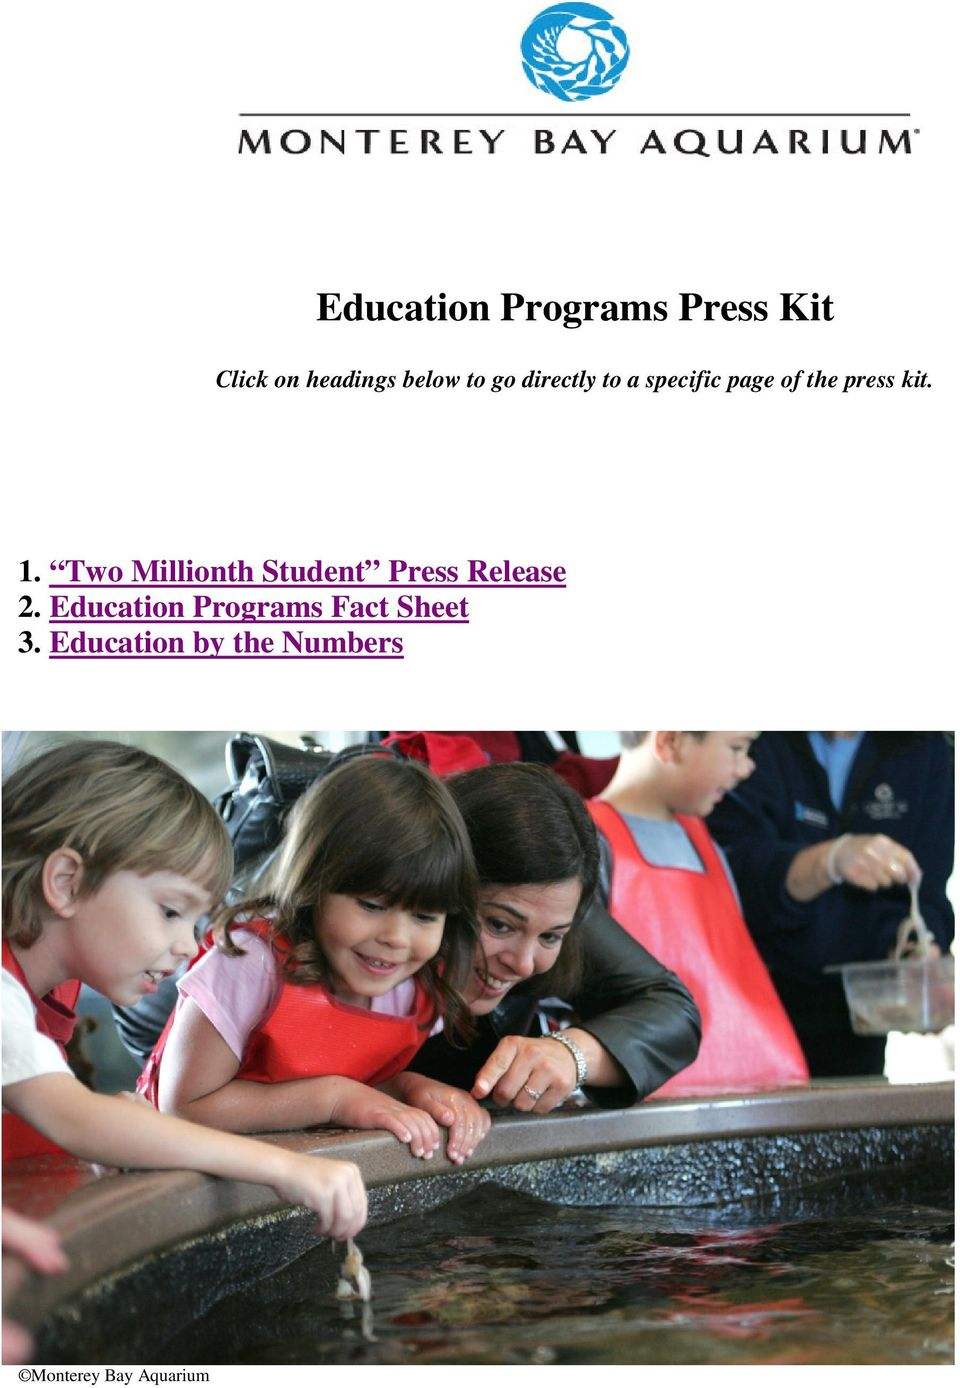 Two Millionth Student Press Release 2.